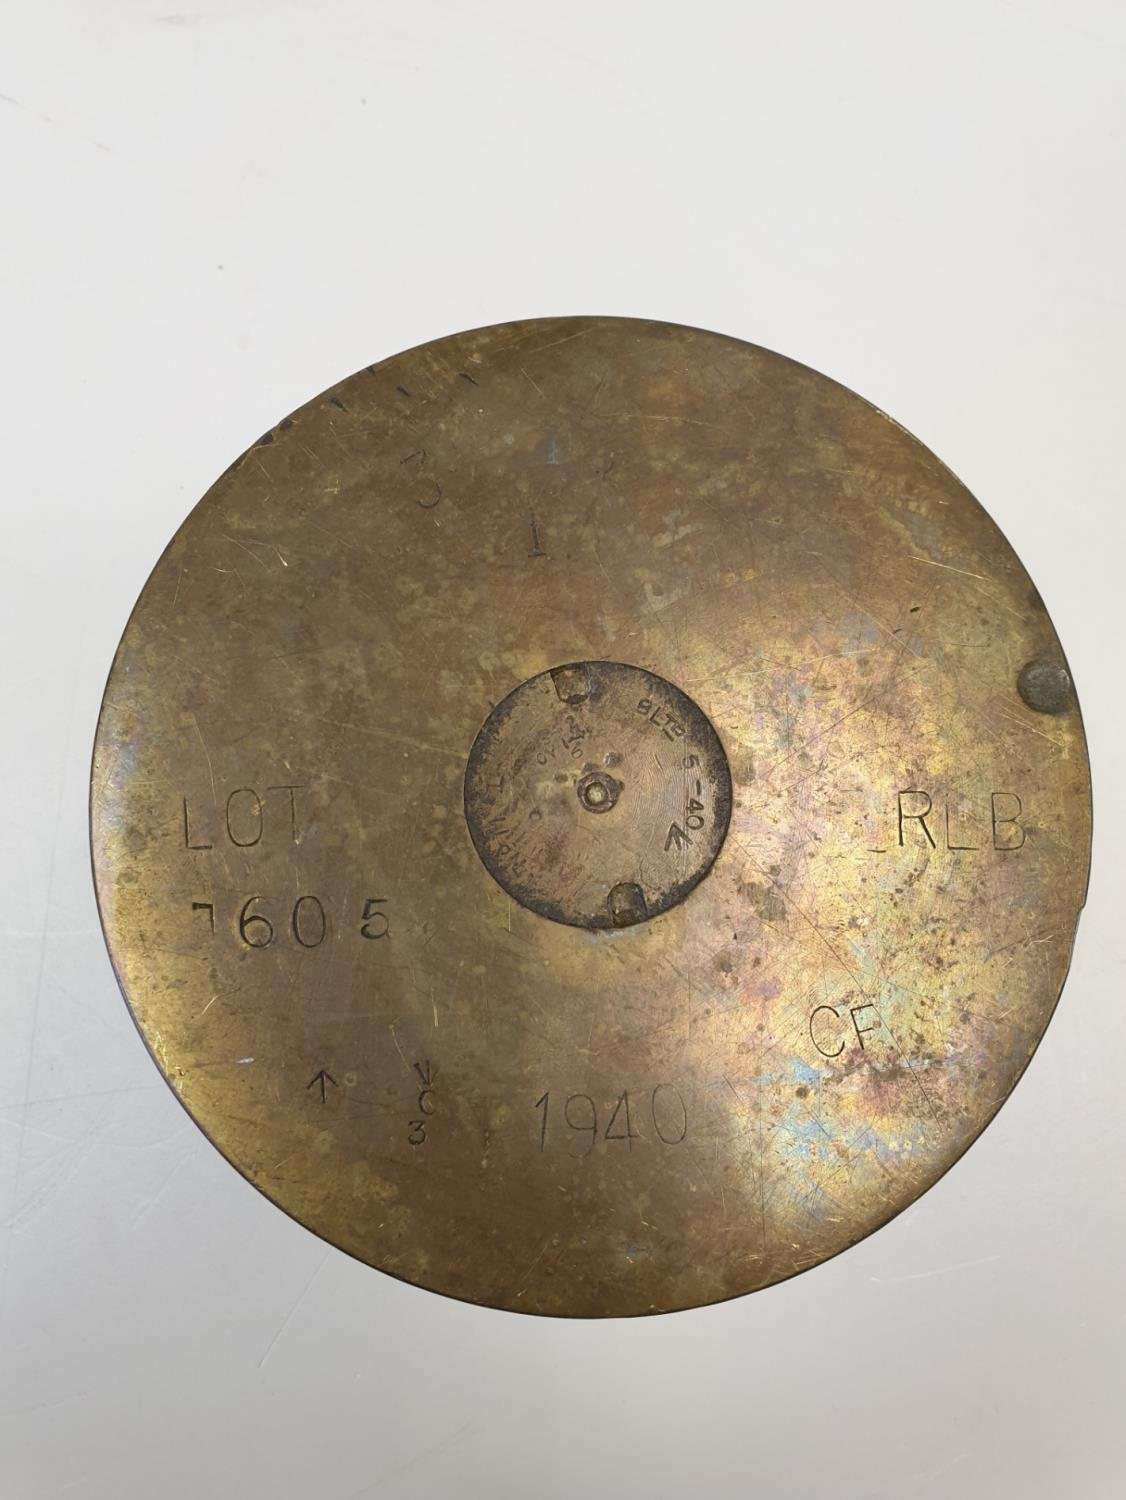 WWII Trench Art Shell Ashtray - Image 3 of 3